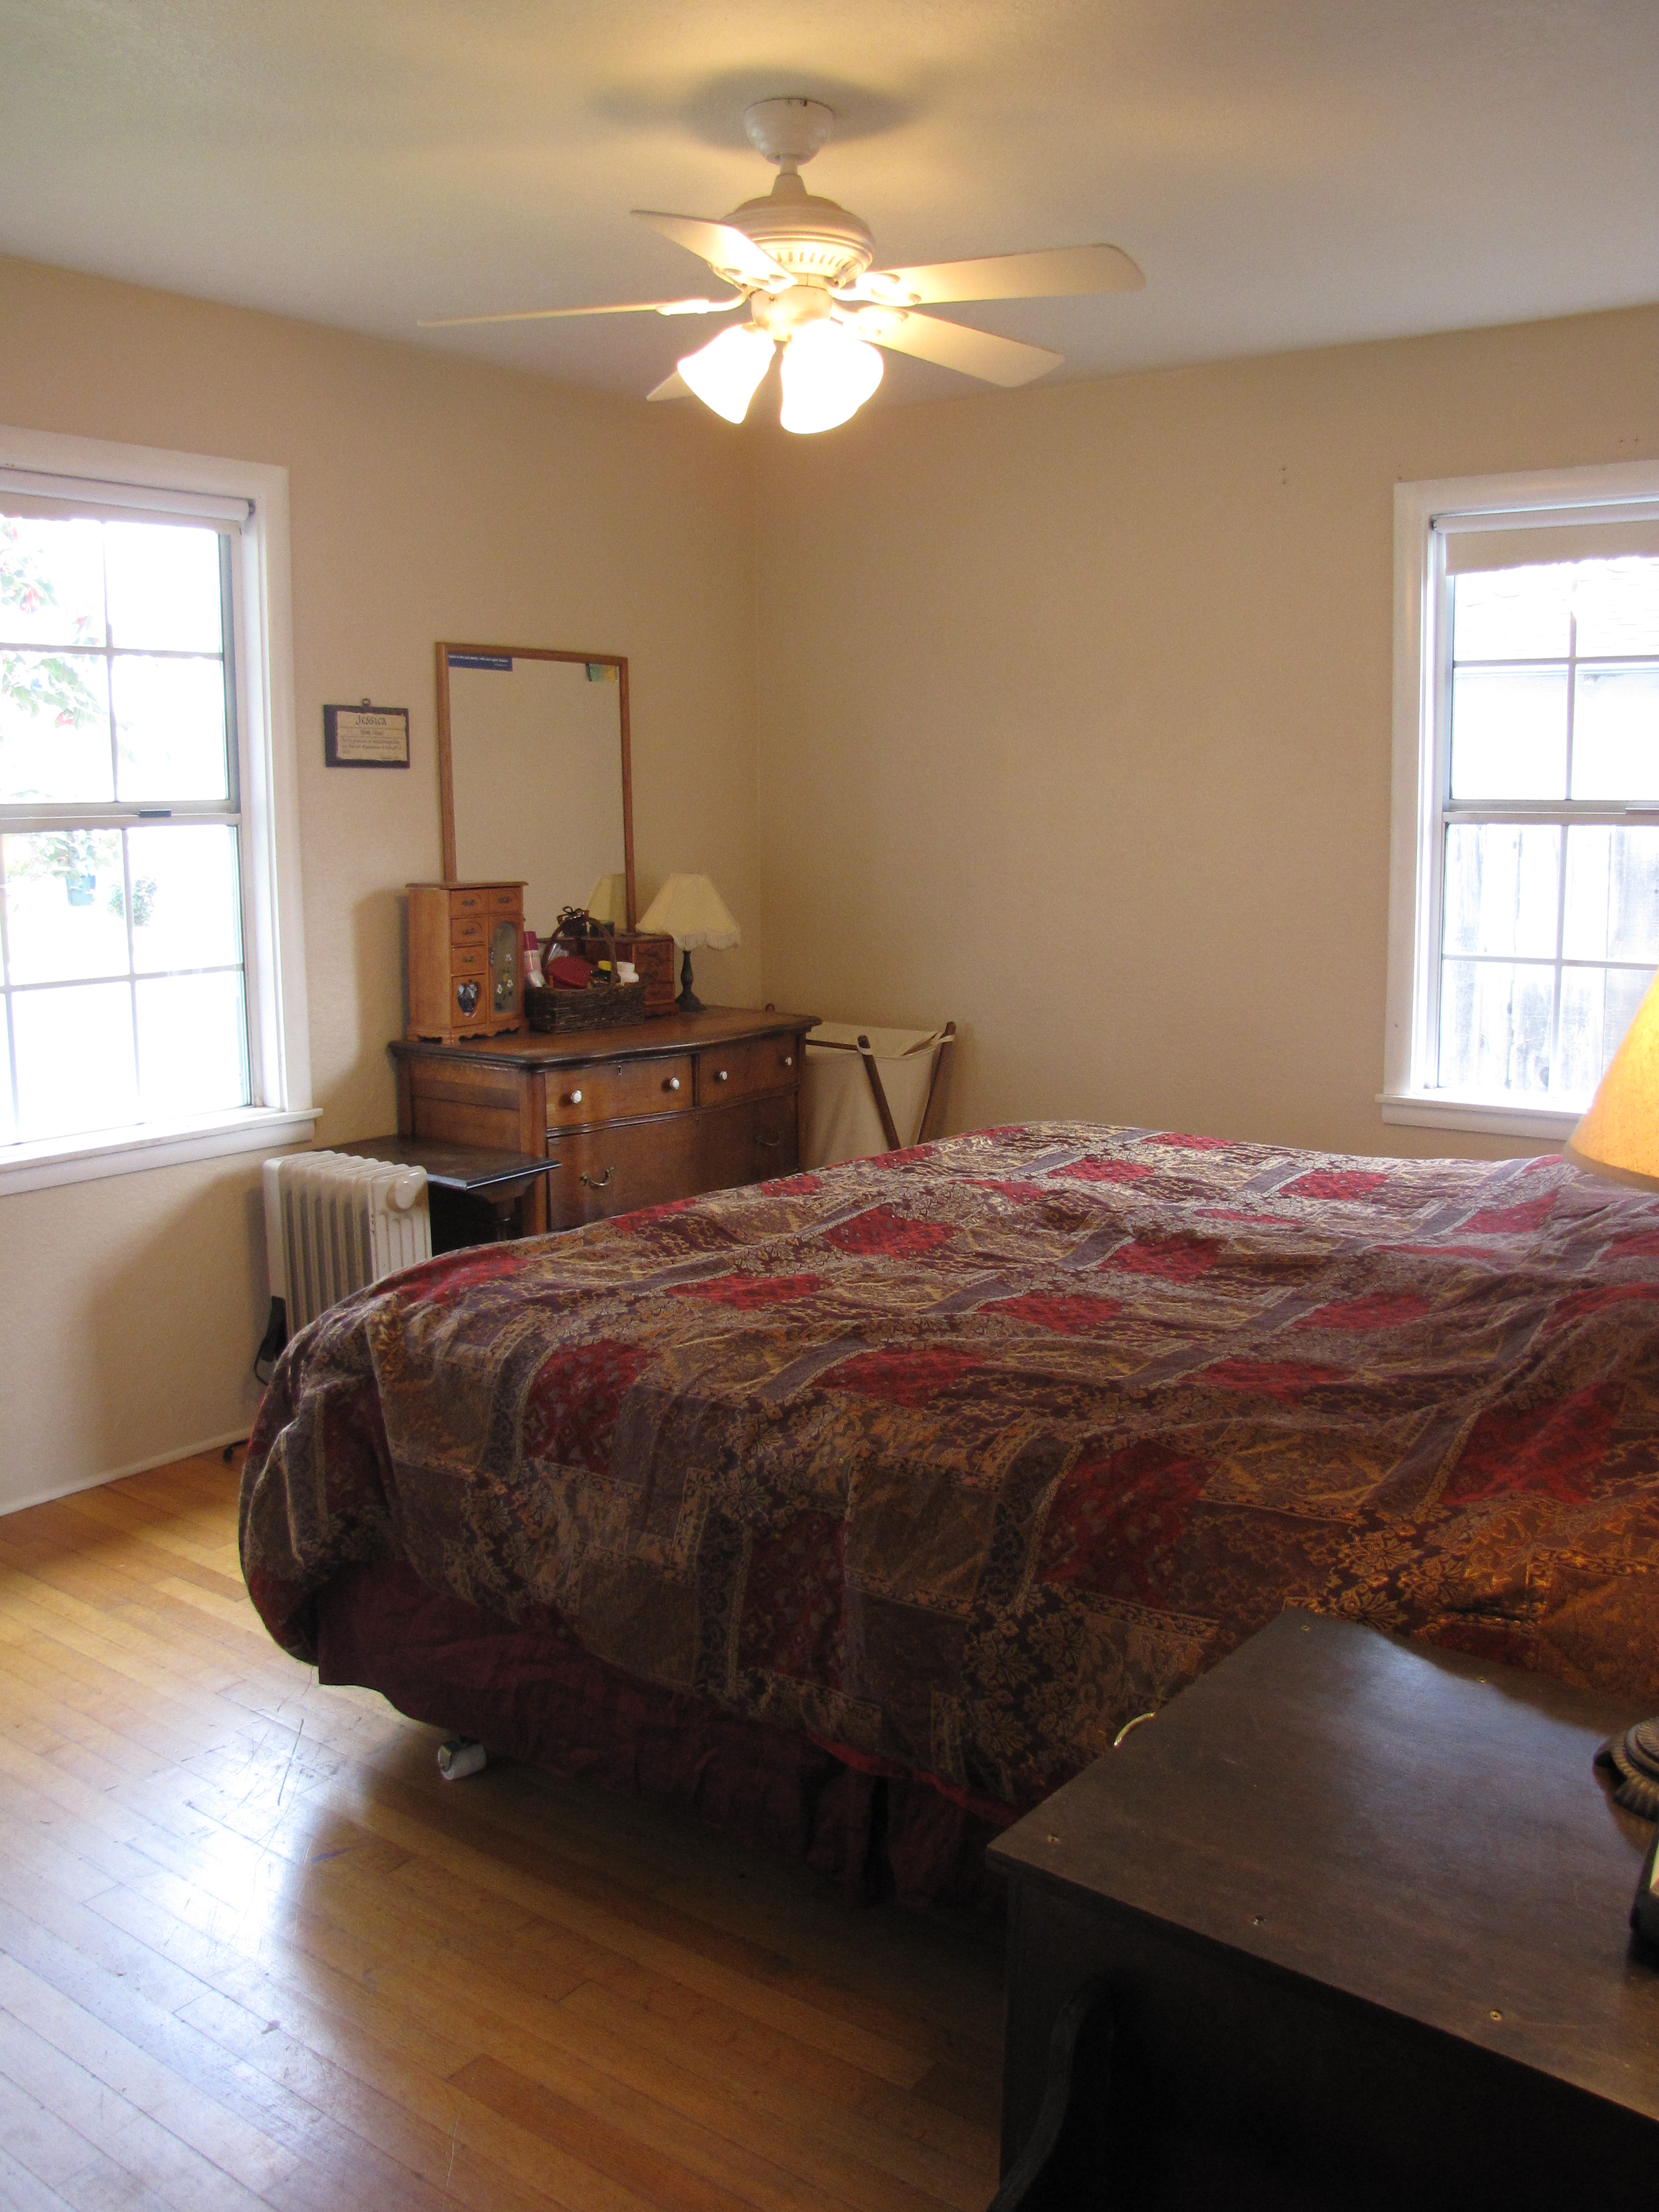 5 Inexpensive Ways To Create A Cozy Master Bedroom  The